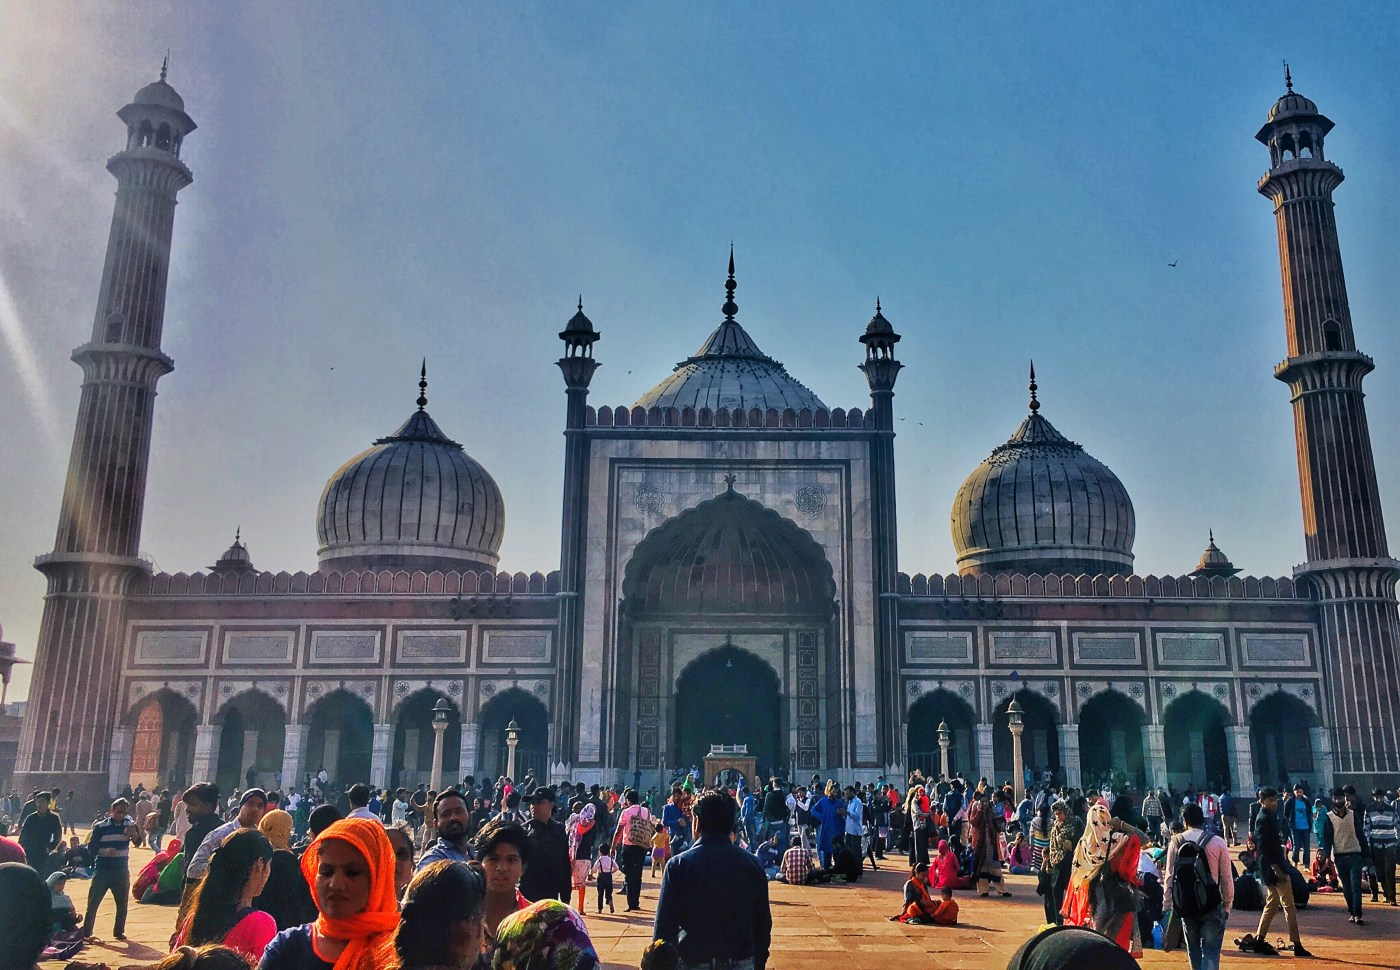 The Prayer Hall building of Jama Masjid |  The largest mosque in India